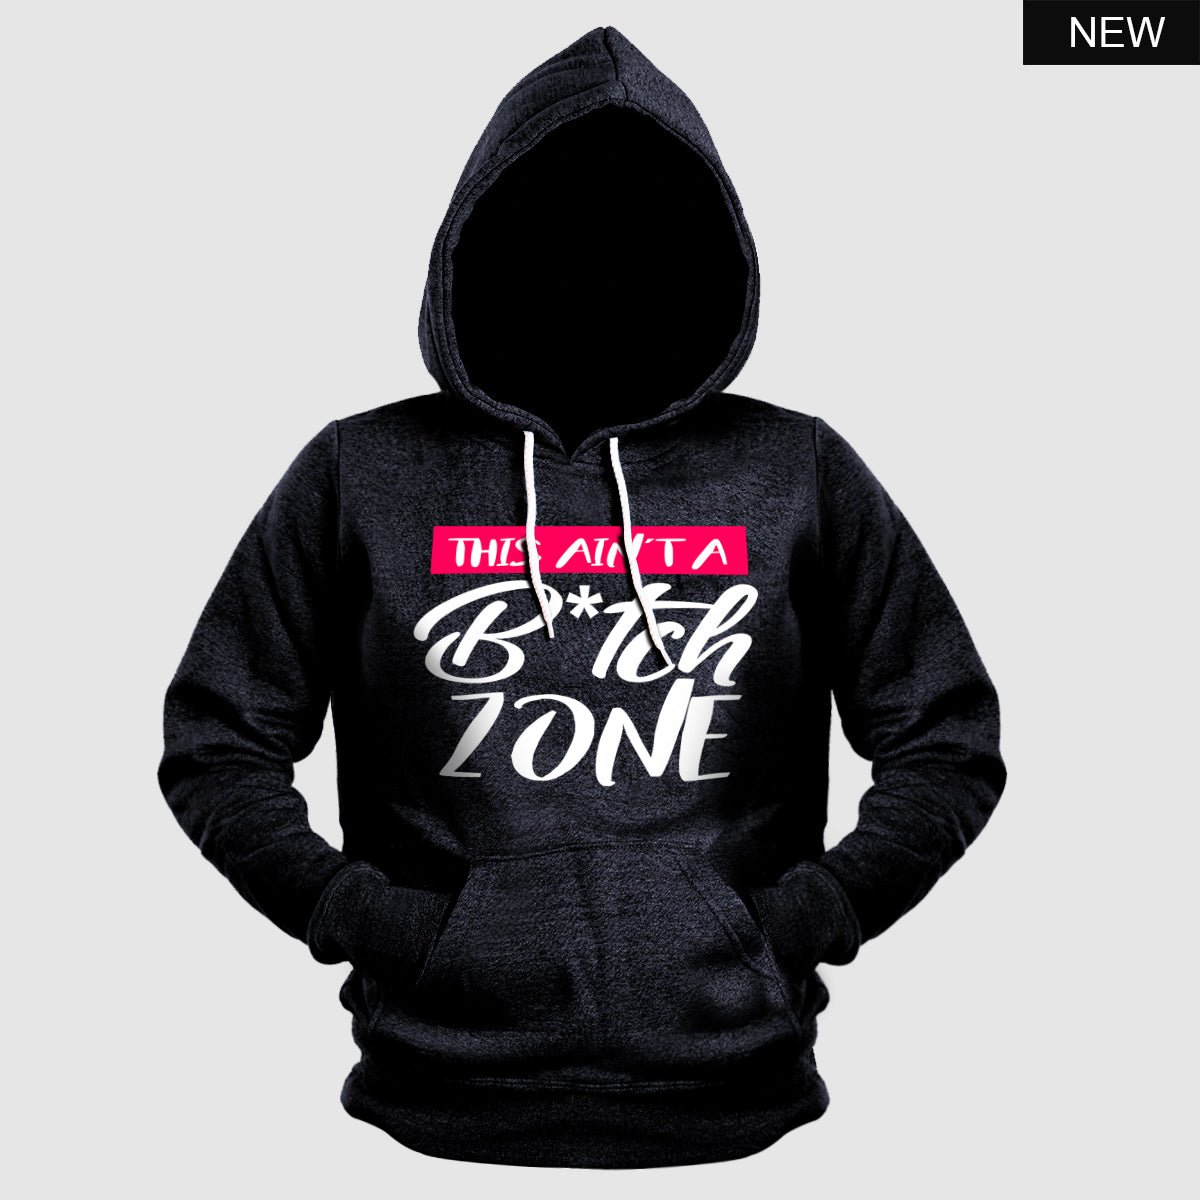 This Ain't A Bitch Zone II Hoodie